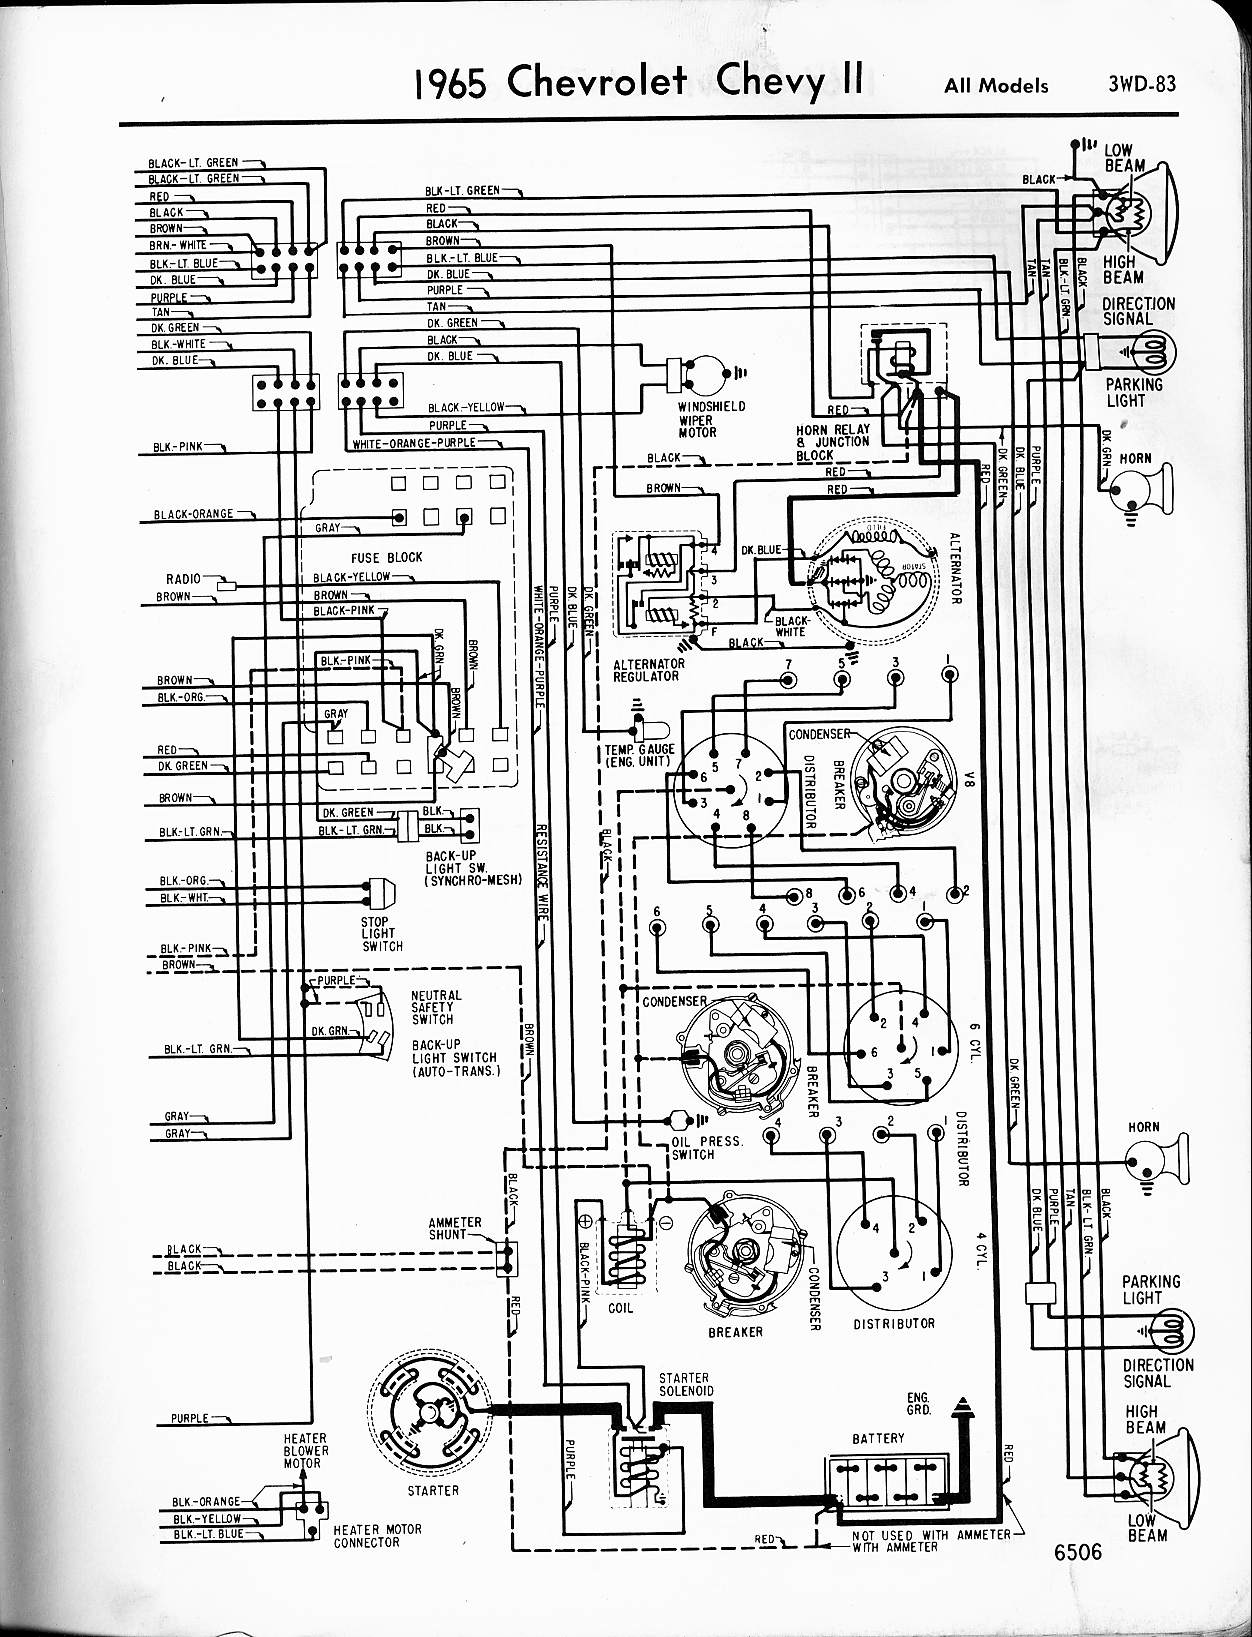 1970 corvette wiring diagram pdf detailed schematics diagram rh  mrskindsclass com 1969 Mustang Ignition Switch Diagram 1969 Mustang Wiring  Diagram PDF